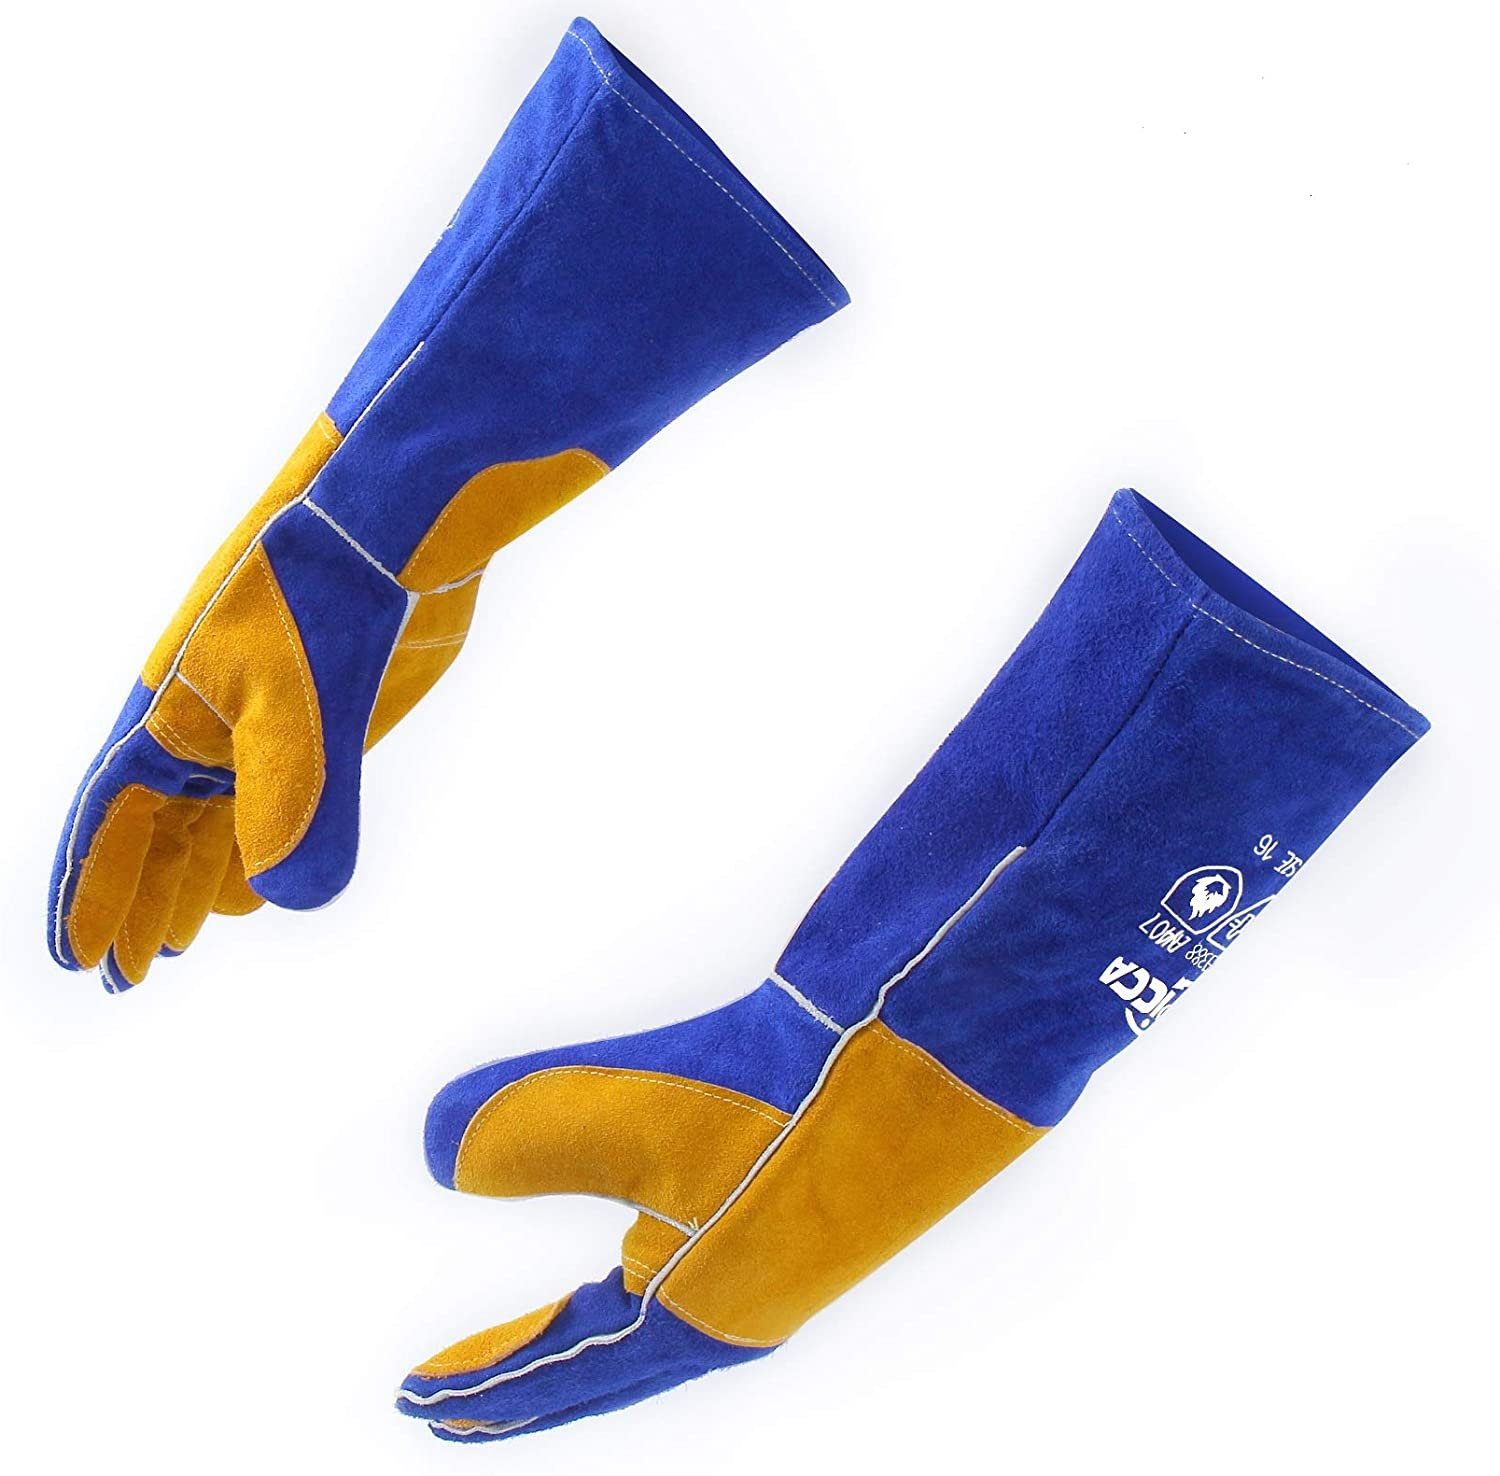 RAPICCA 16 Inches Leather Forge Mig Stick Welding Gloves